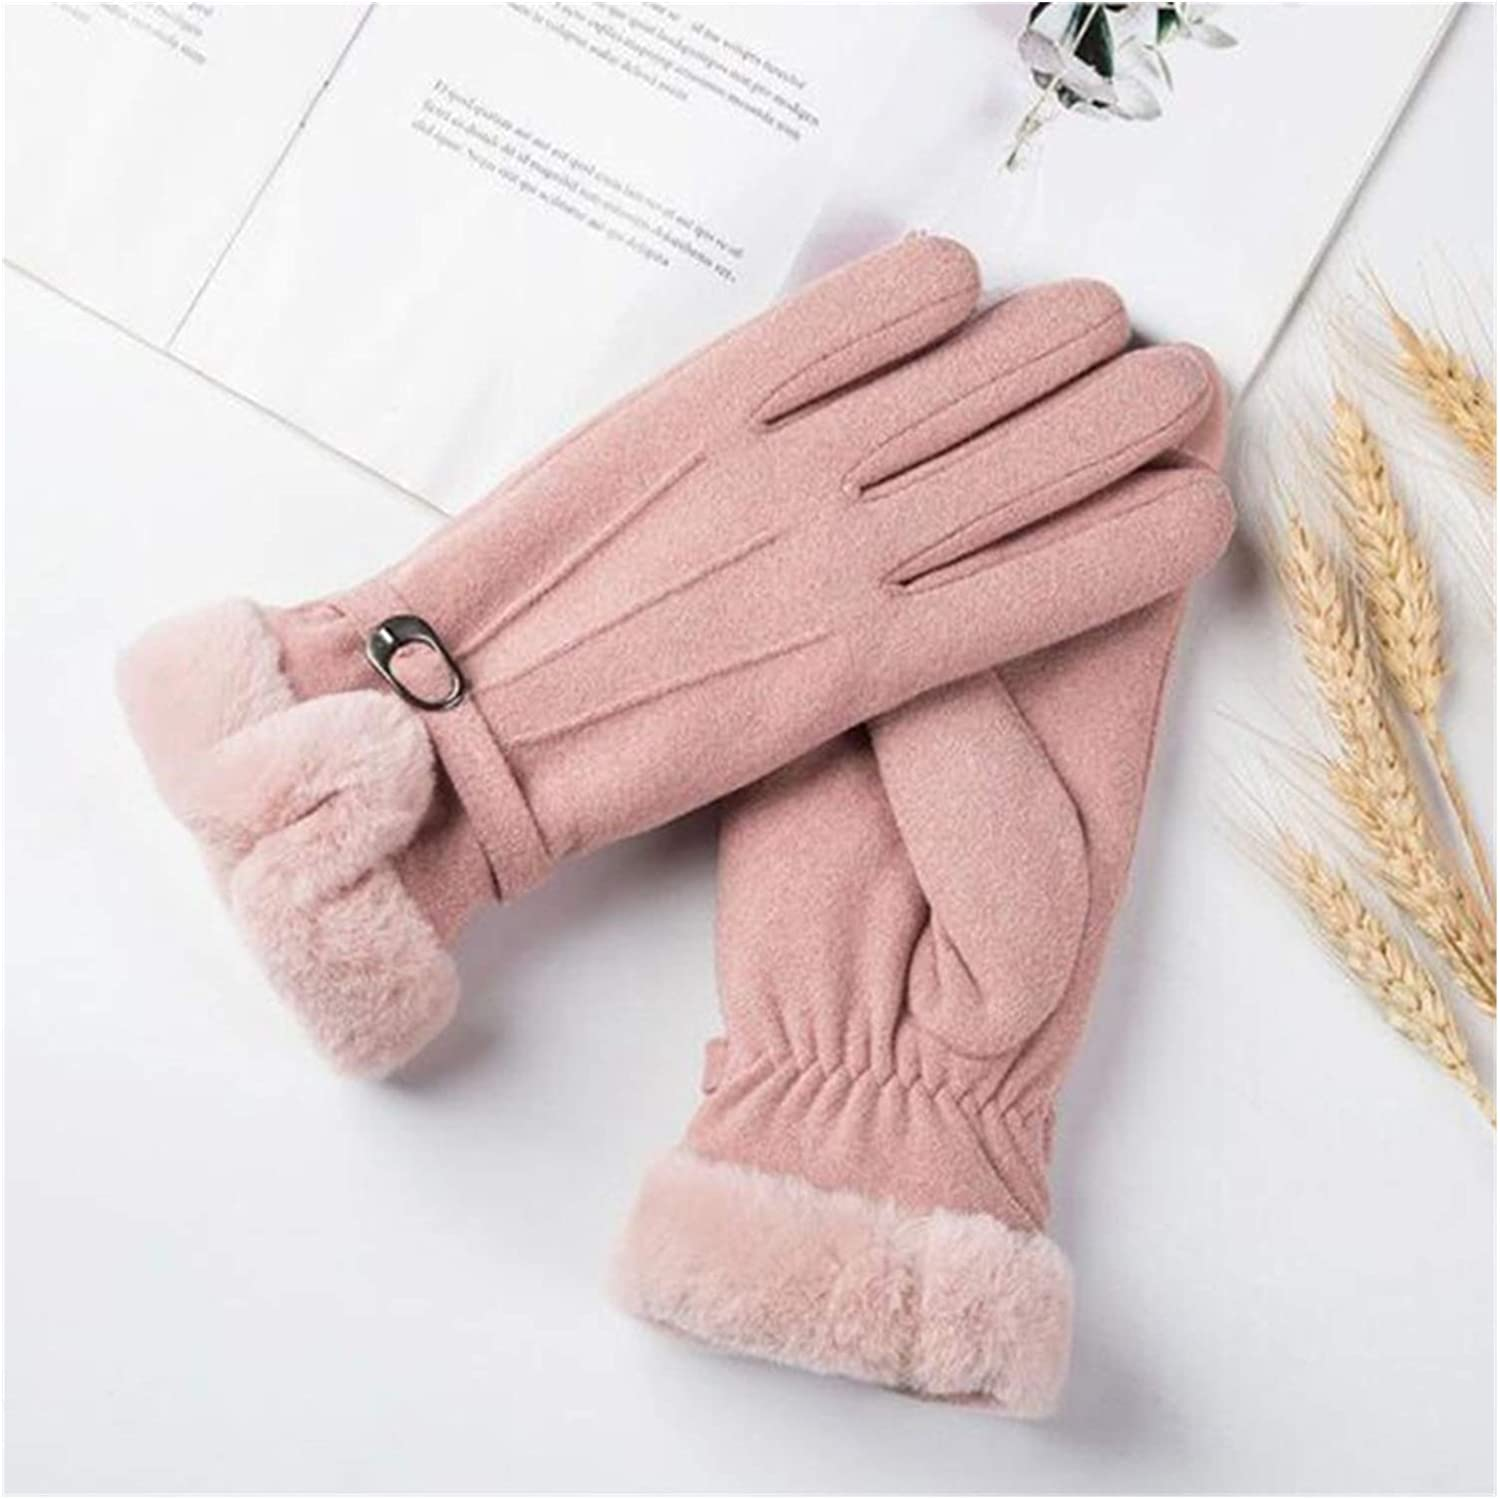 JBIVWW Winter Warm Fluff Gloves for Women Female Solid Color Full Finger Women Gloves Girls Student Mittens Thermo Handschoenen Guantes (Color : Pink)